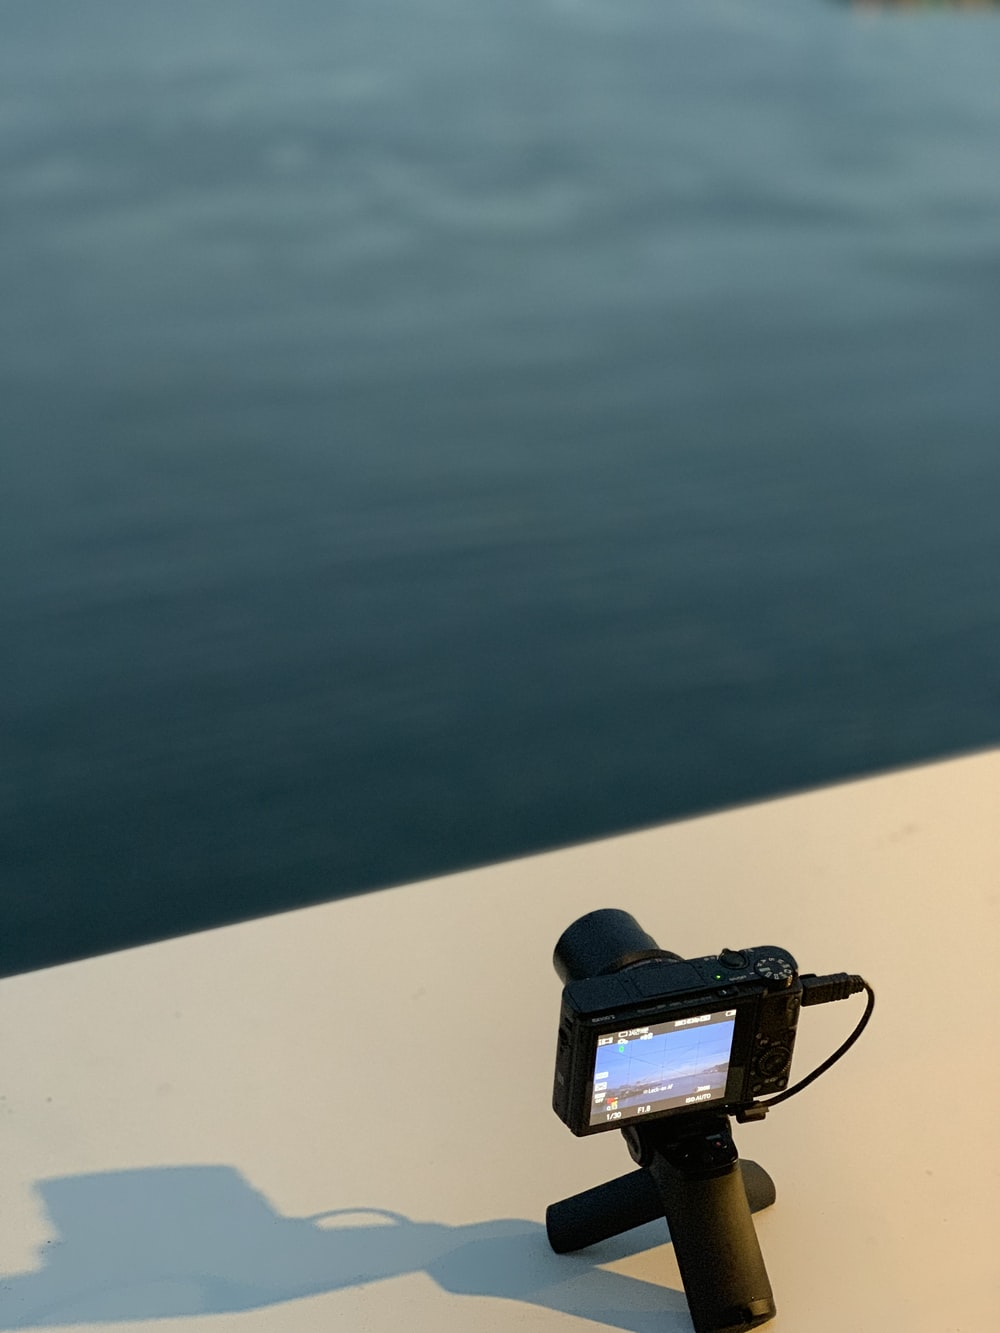 black action camera on white surface